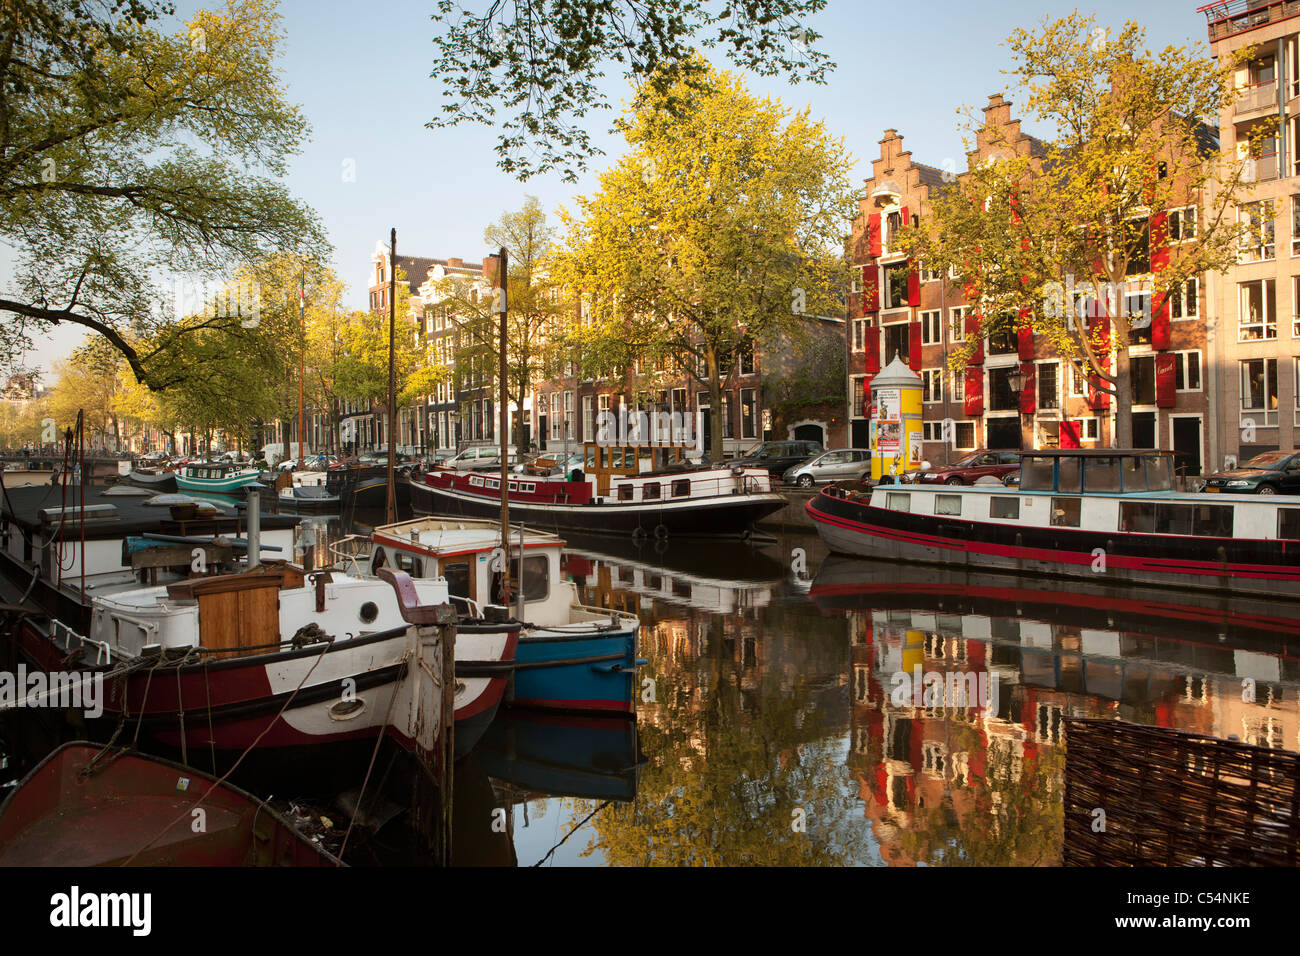 The Netherlands, Amsterdam, 17th century houses and houseboats at canal called Keizersgracht. Unesco World Heritage - Stock Image